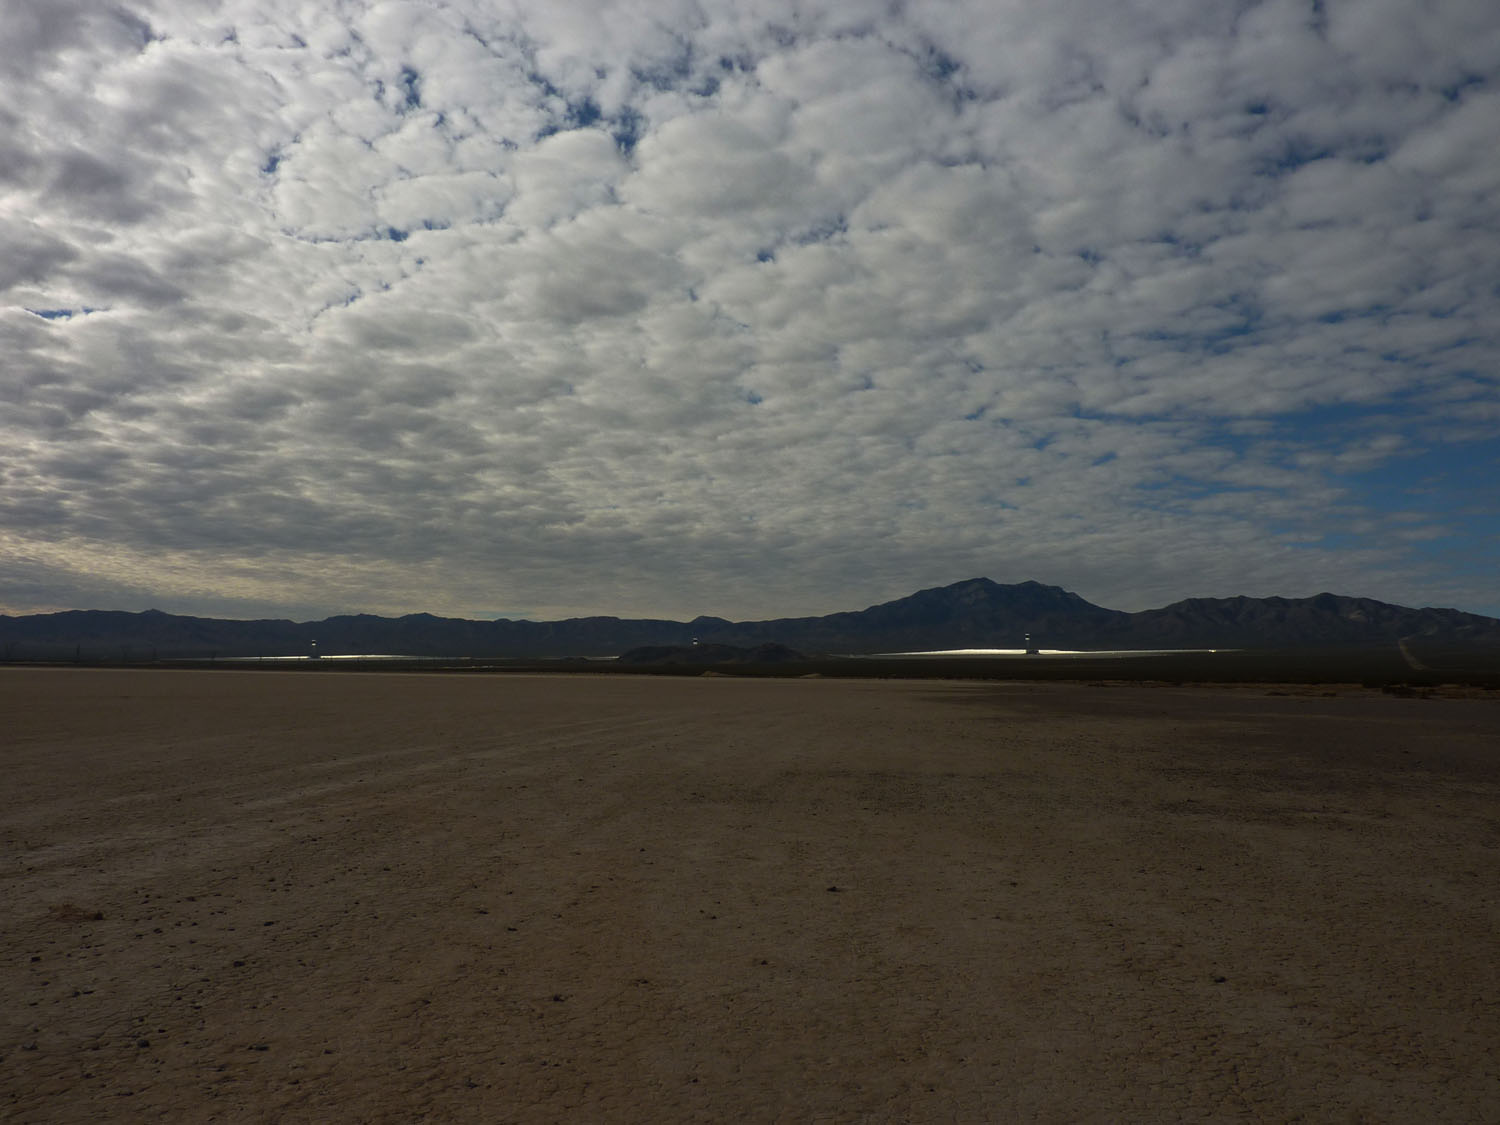 Ivanpah solar electric generating system from afar.